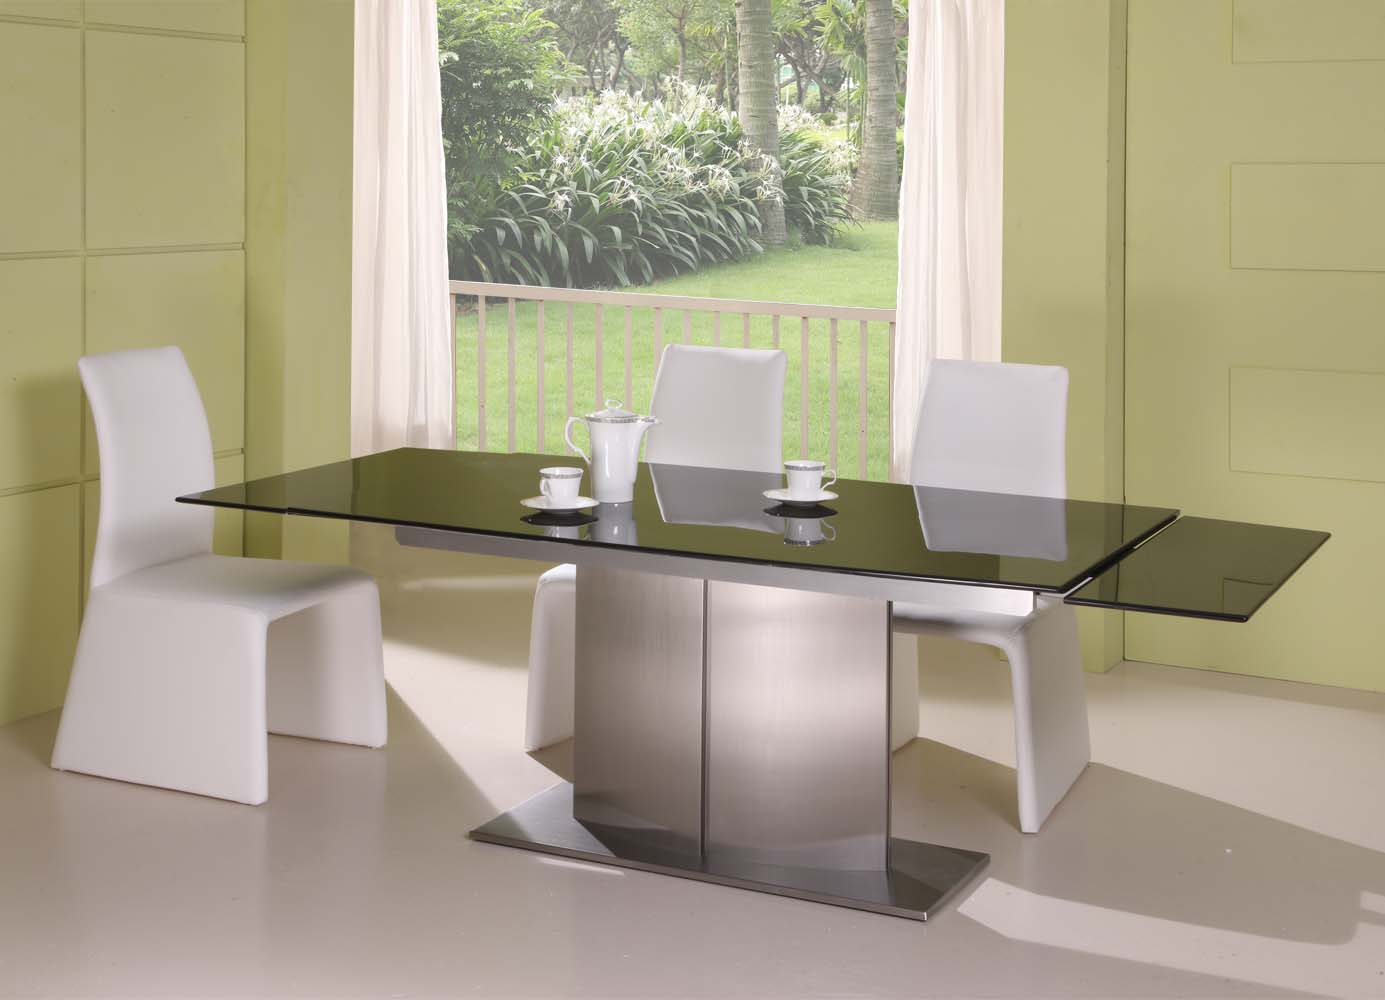 make a beautiful dining room with expandable dining table set with white chairs and glass surface table on white floor matched with olive wall ideas